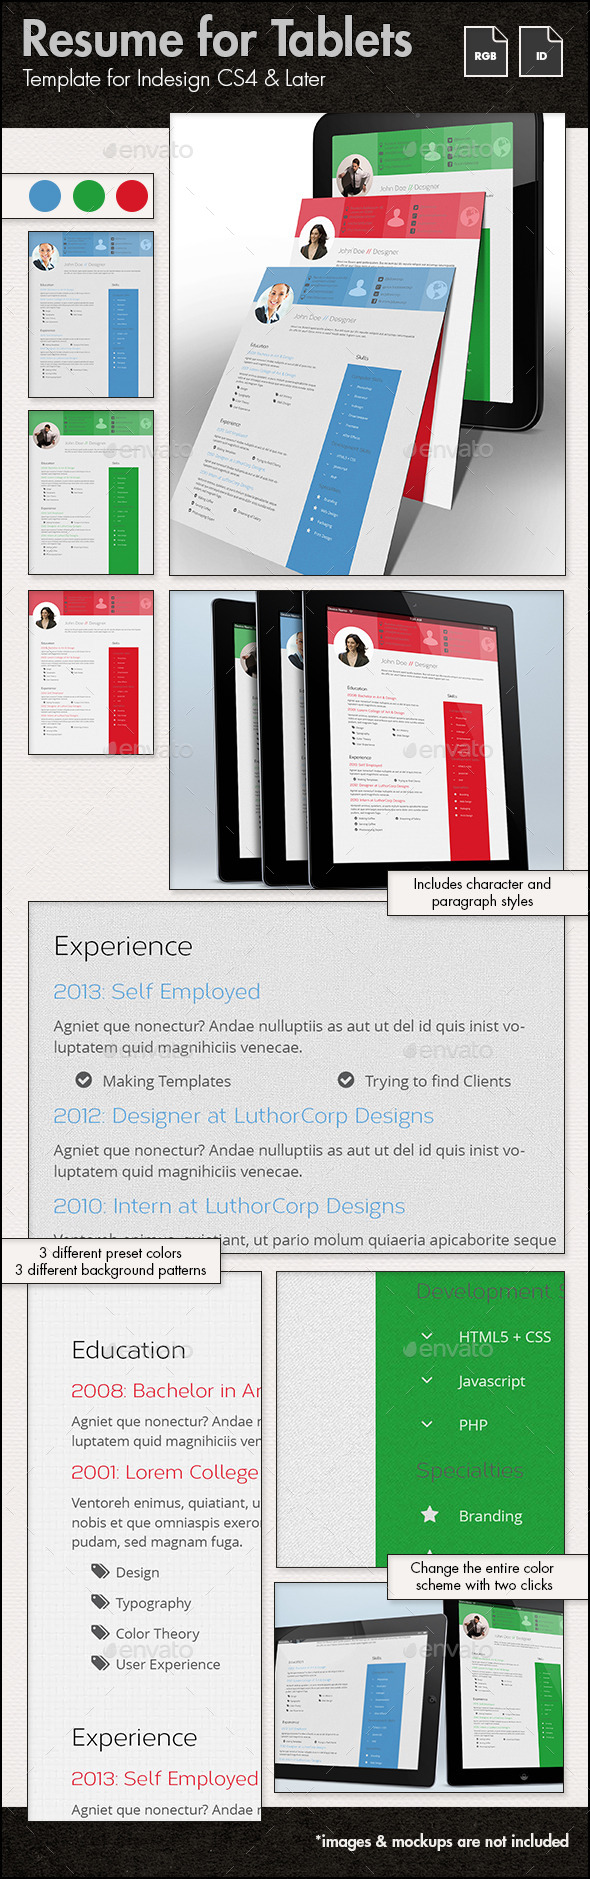 Resume Template for Tablets - ePublishing